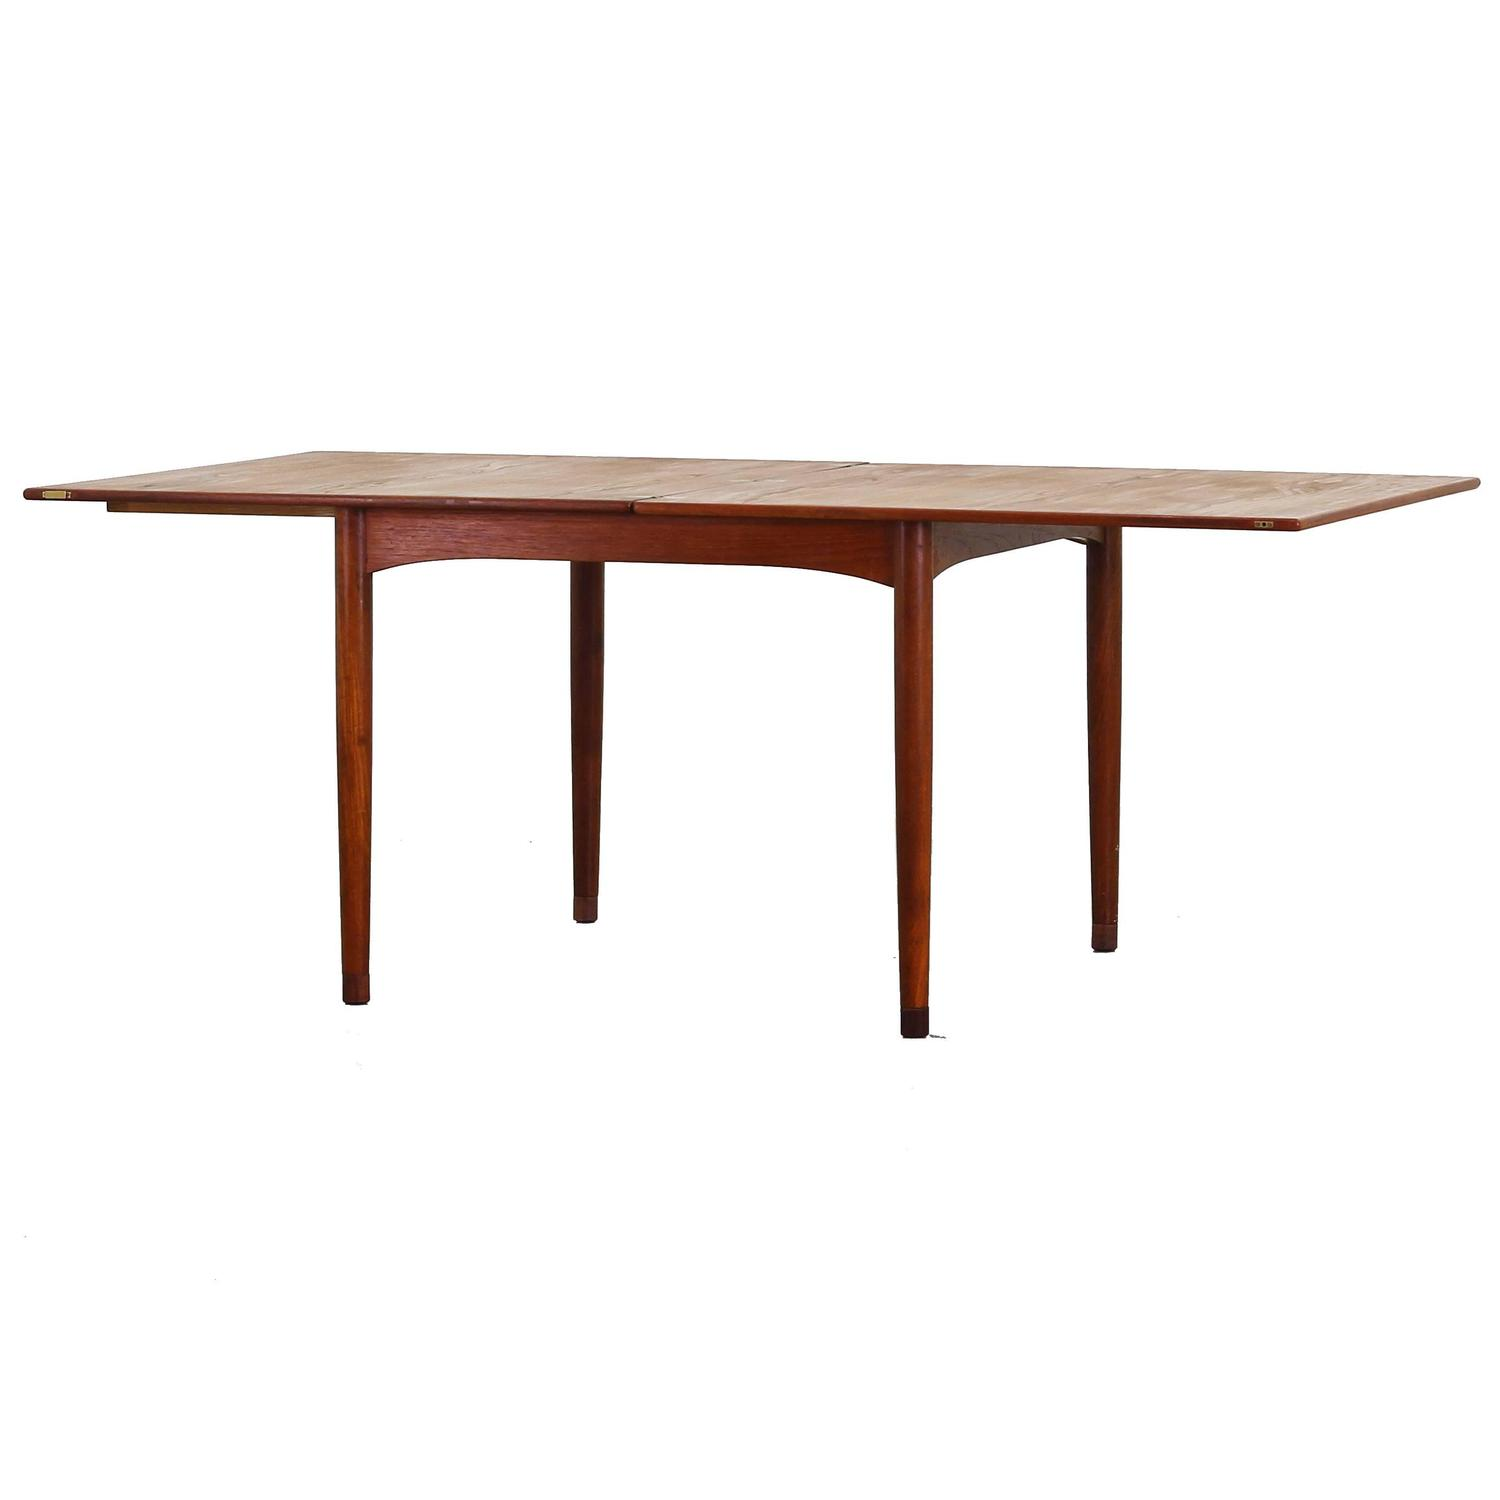 Rare Dining Expandable Table With Flip Top By Borge Mogensen For Soborg For Sale At 1stdibs